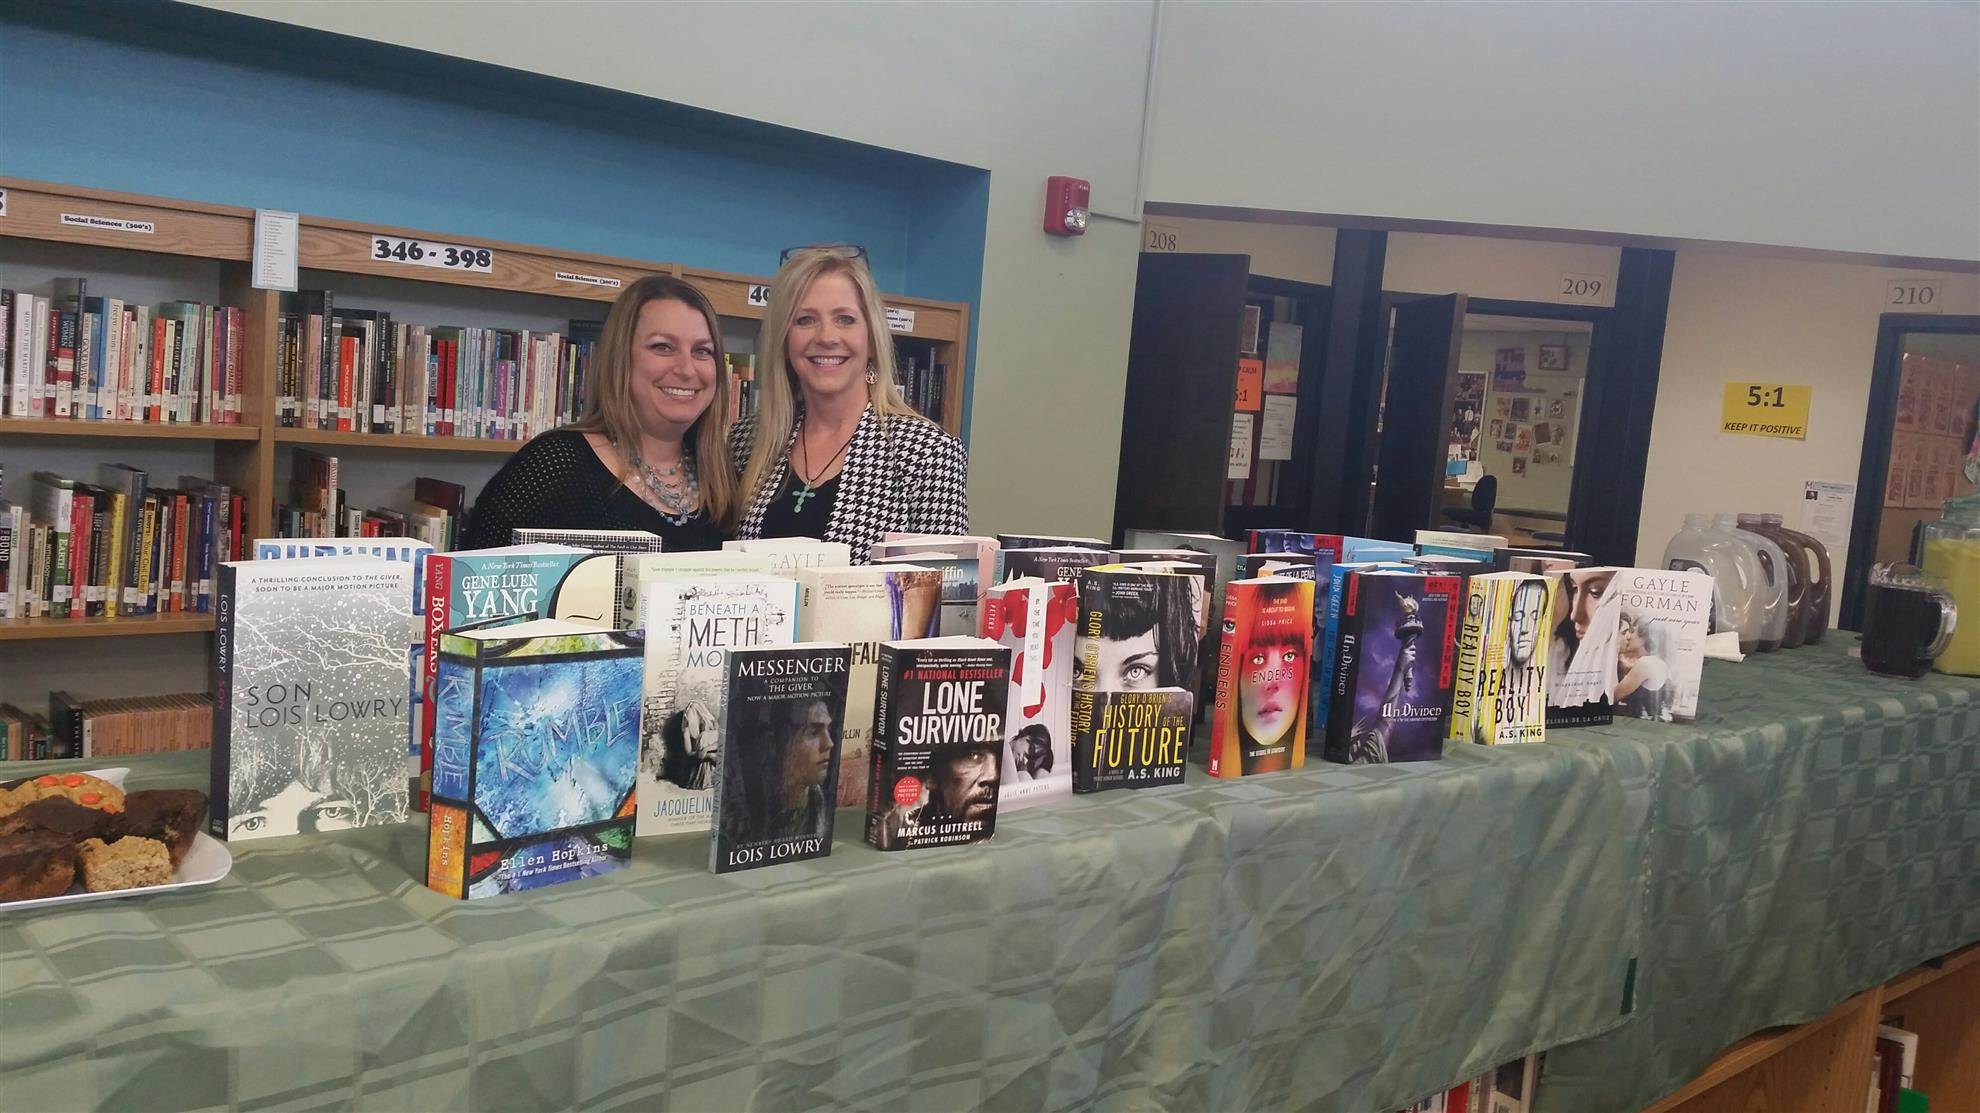 Sandi and Cristiane pictured in front of 2015 Metro High School book donation.